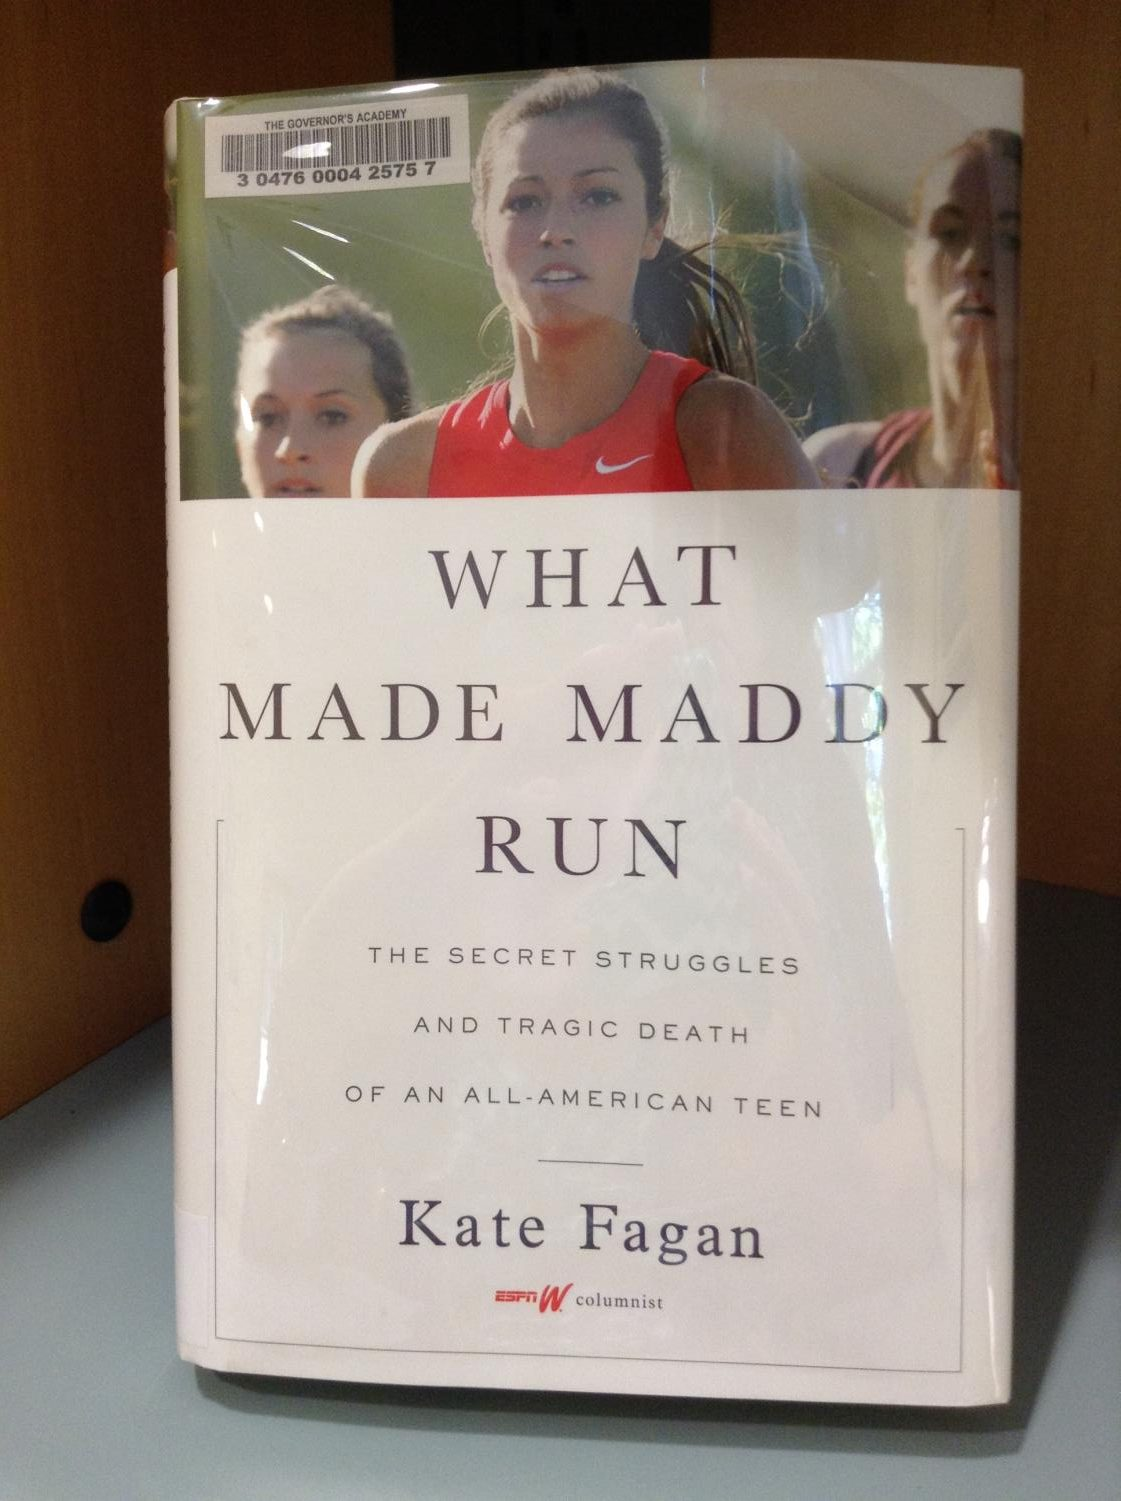 """What Made Maddy Run"" by Kate Fagan tells the story of a college student's struggles with mental health. (Image courtesy of Pesky Librarians via Flickr)."